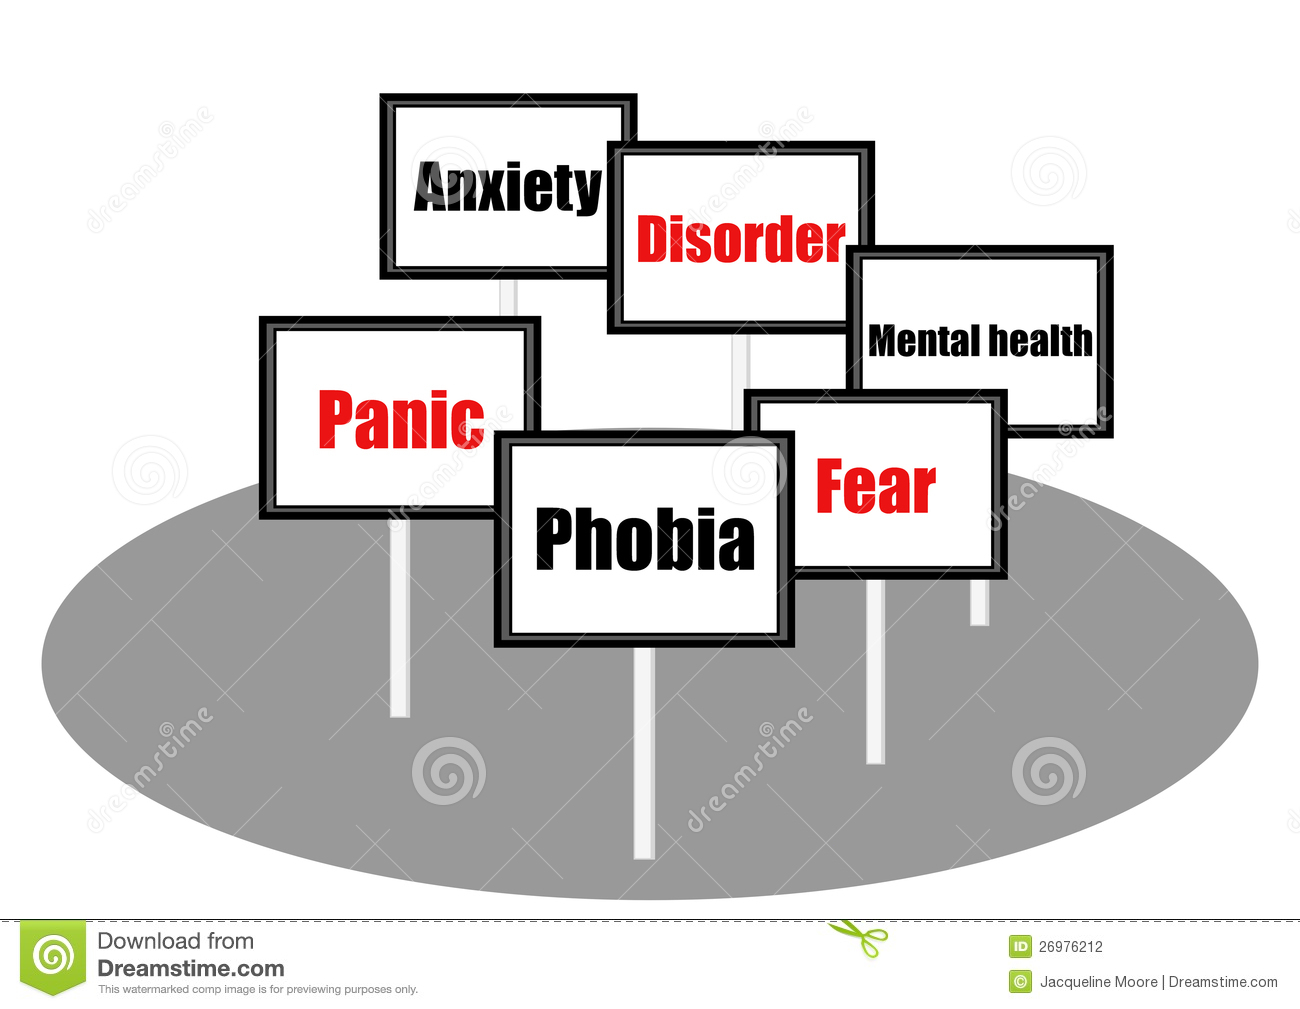 Phobia signs